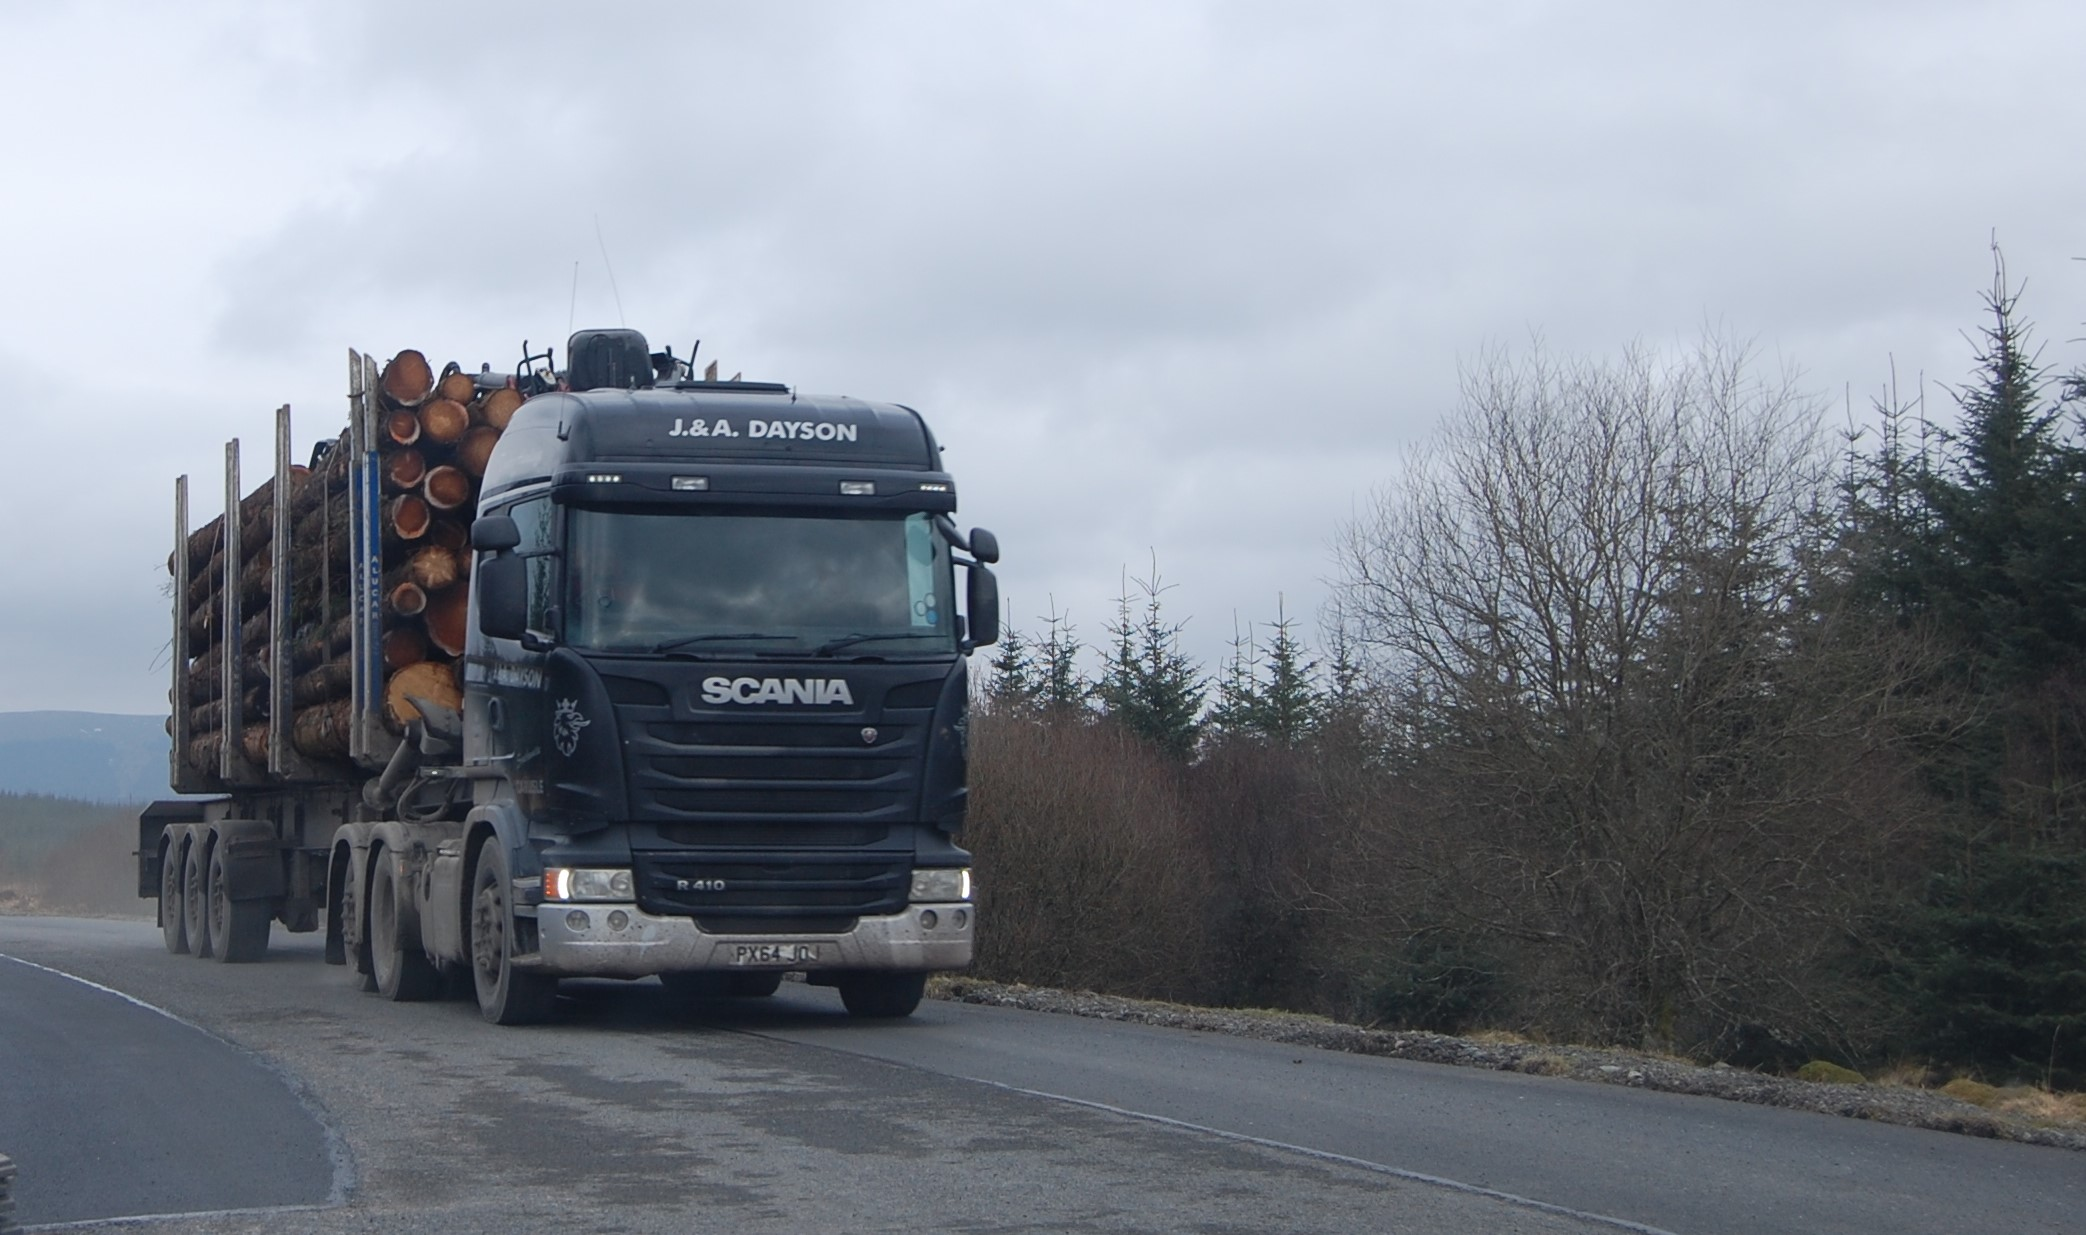 £7 million for timber transport projects